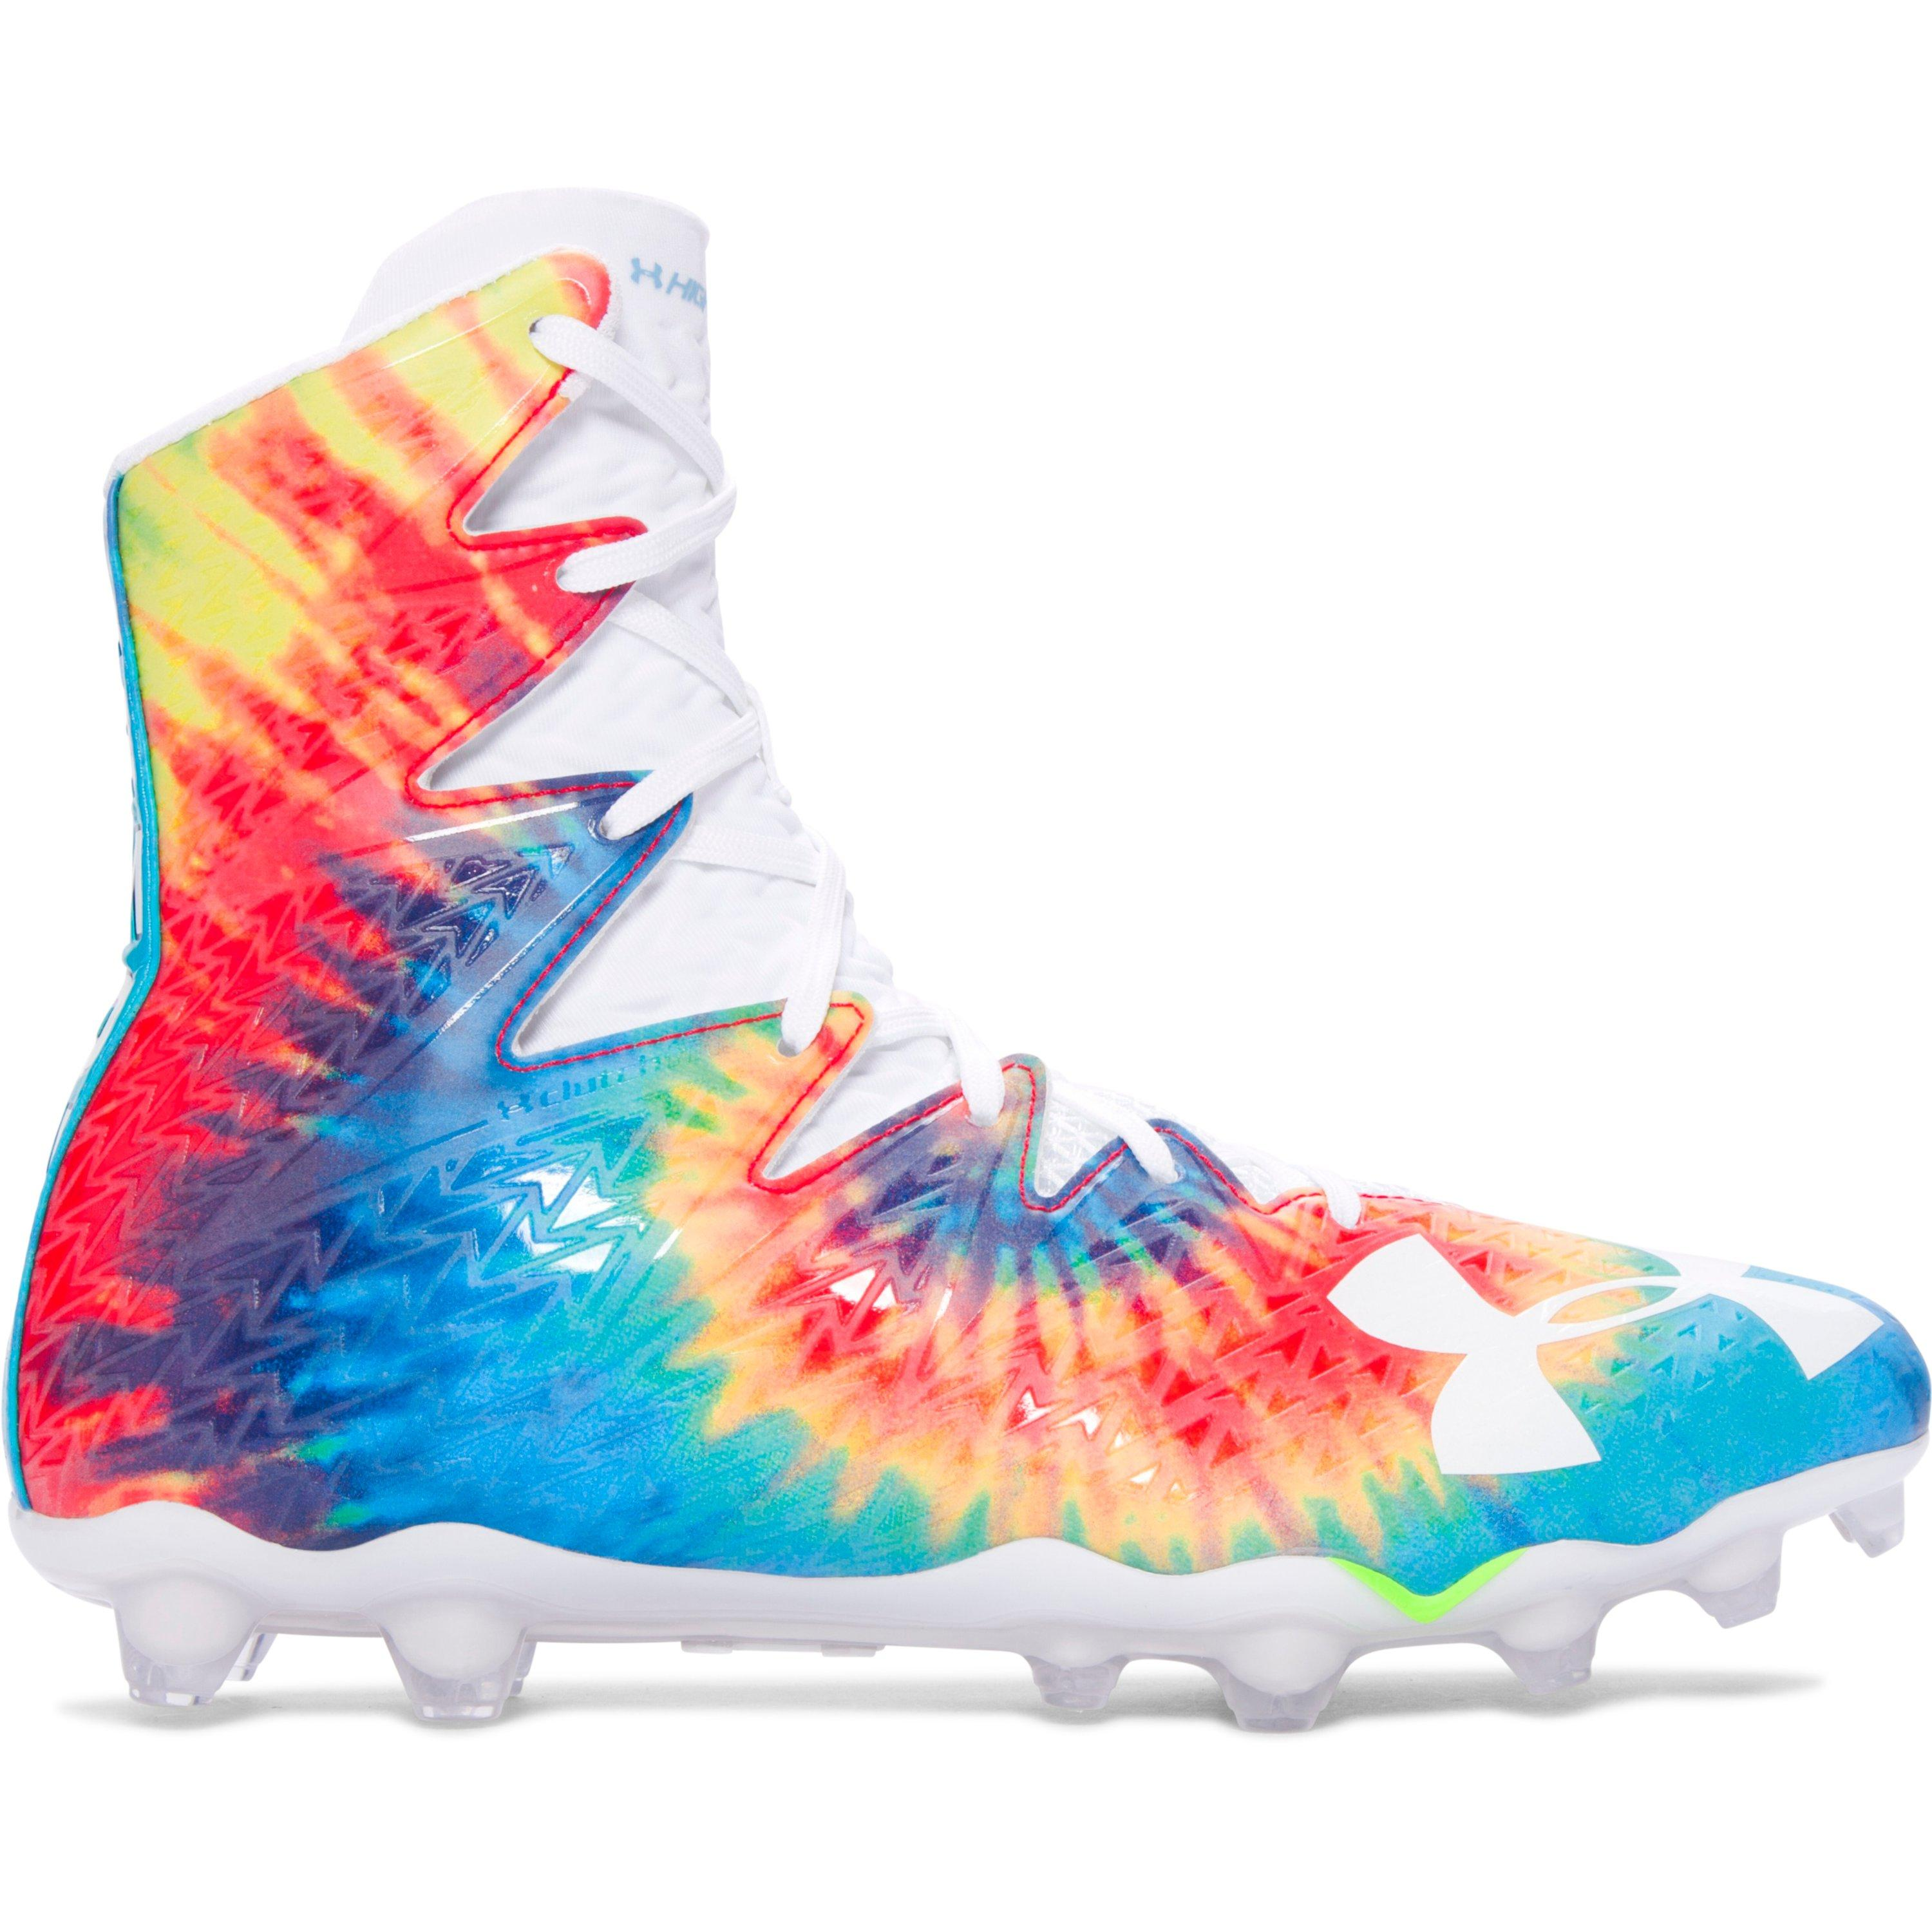 7956484aba81 Under Armour Men's Ua Highlight Mc – Limited Edition Lacrosse Cleats ...